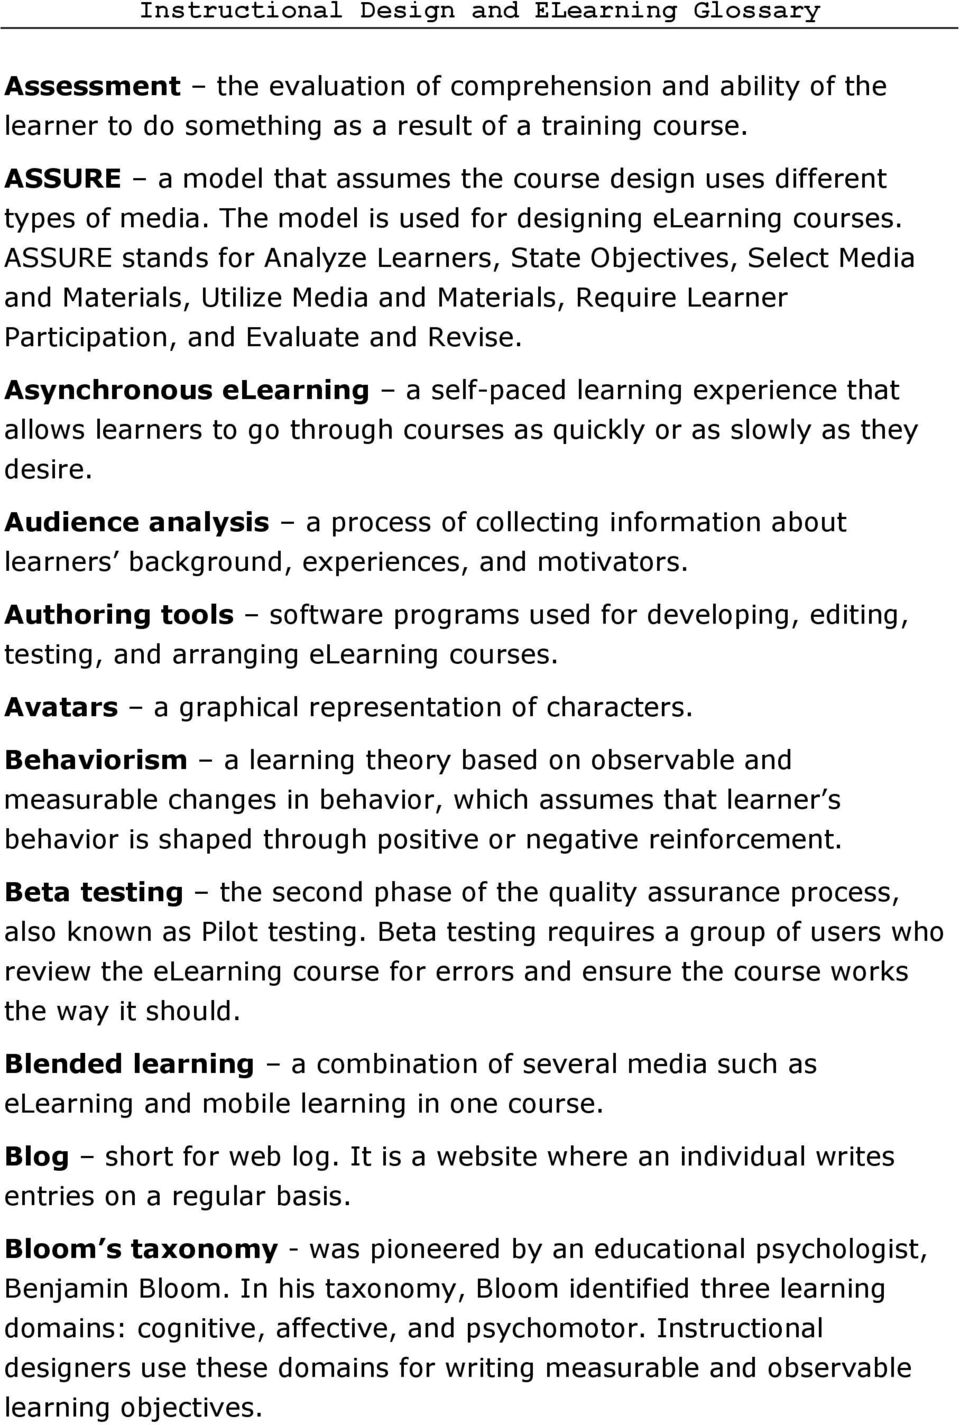 ASSURE stands for Analyze Learners, State Objectives, Select Media and Materials, Utilize Media and Materials, Require Learner Participation, and Evaluate and Revise.